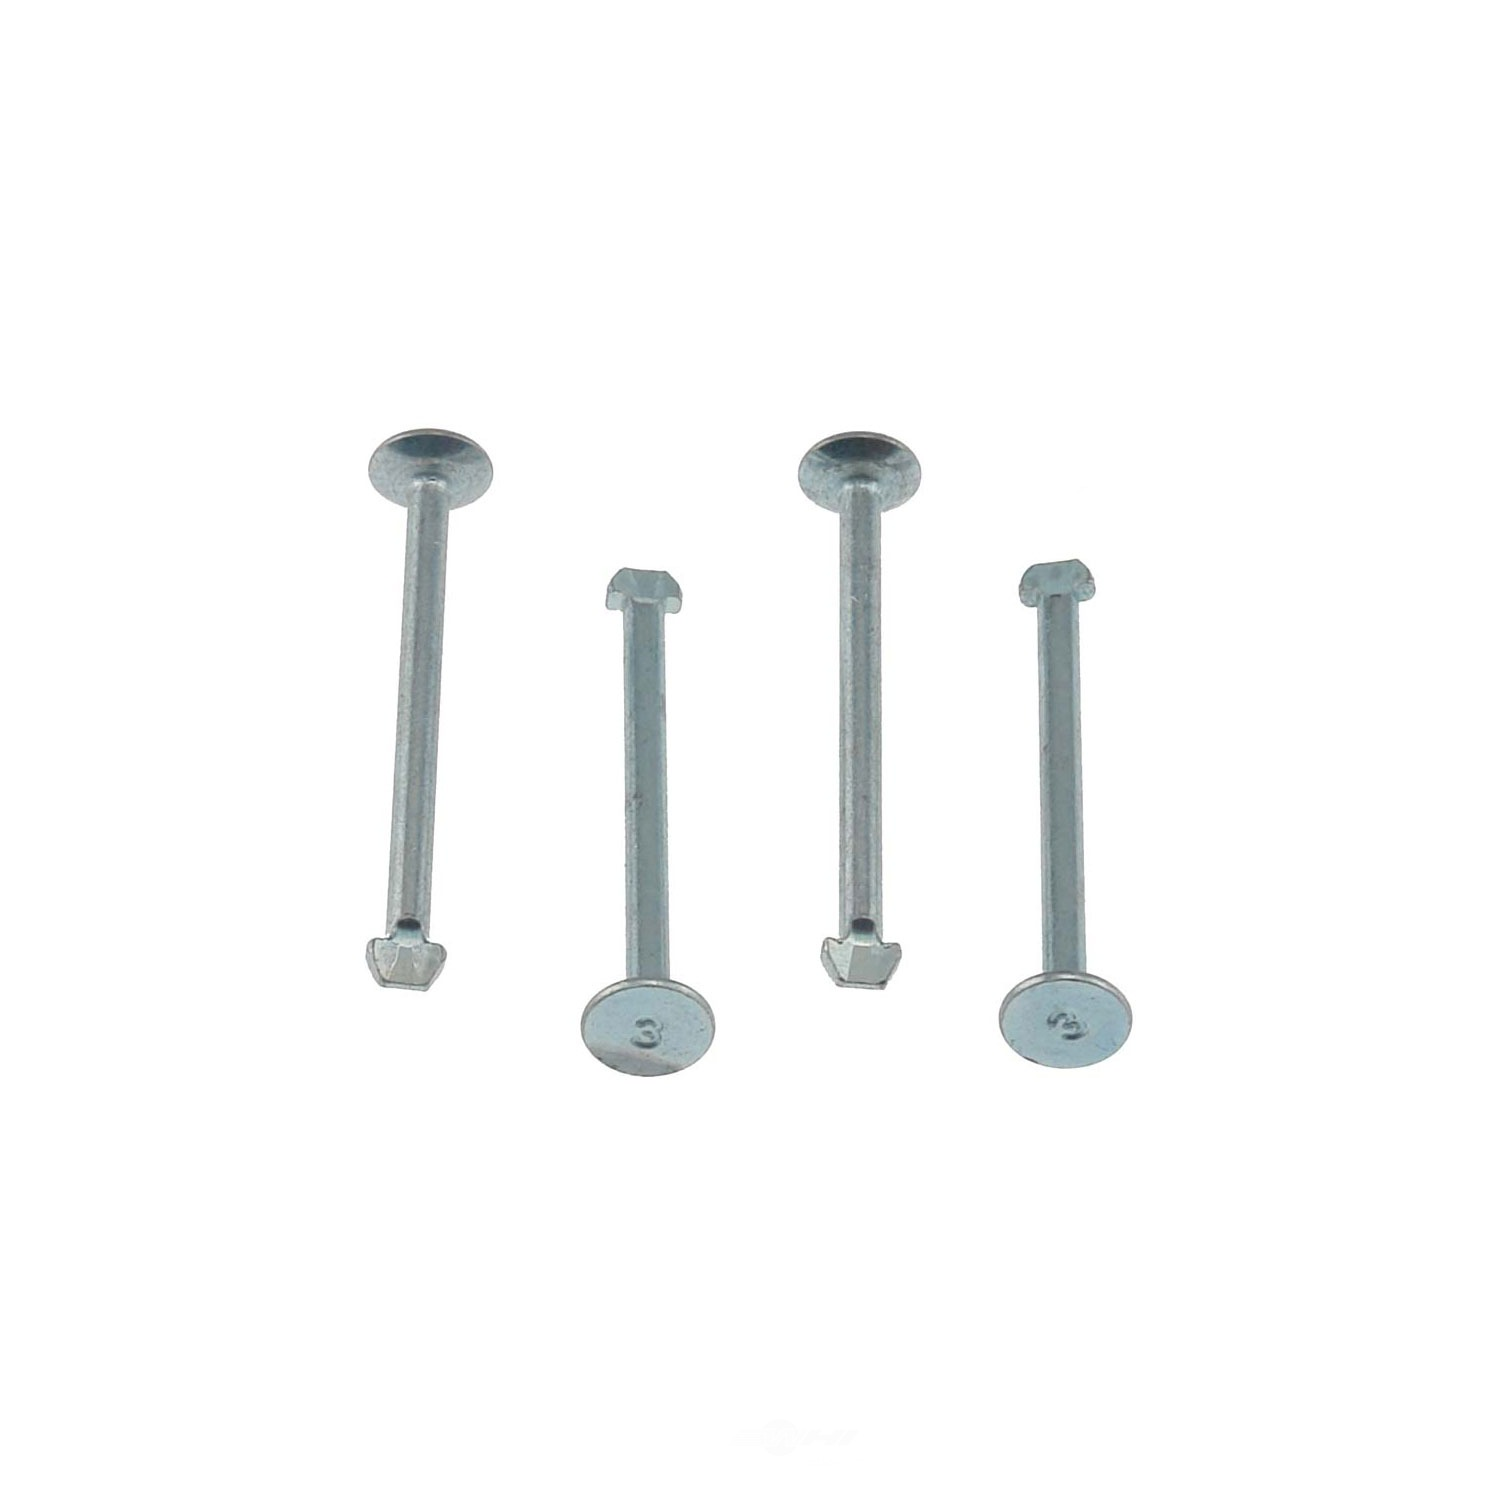 CARLSON QUALITY BRAKE PARTS - Brake Spring Hold Down Pin (Rear) - CRL H1104-2